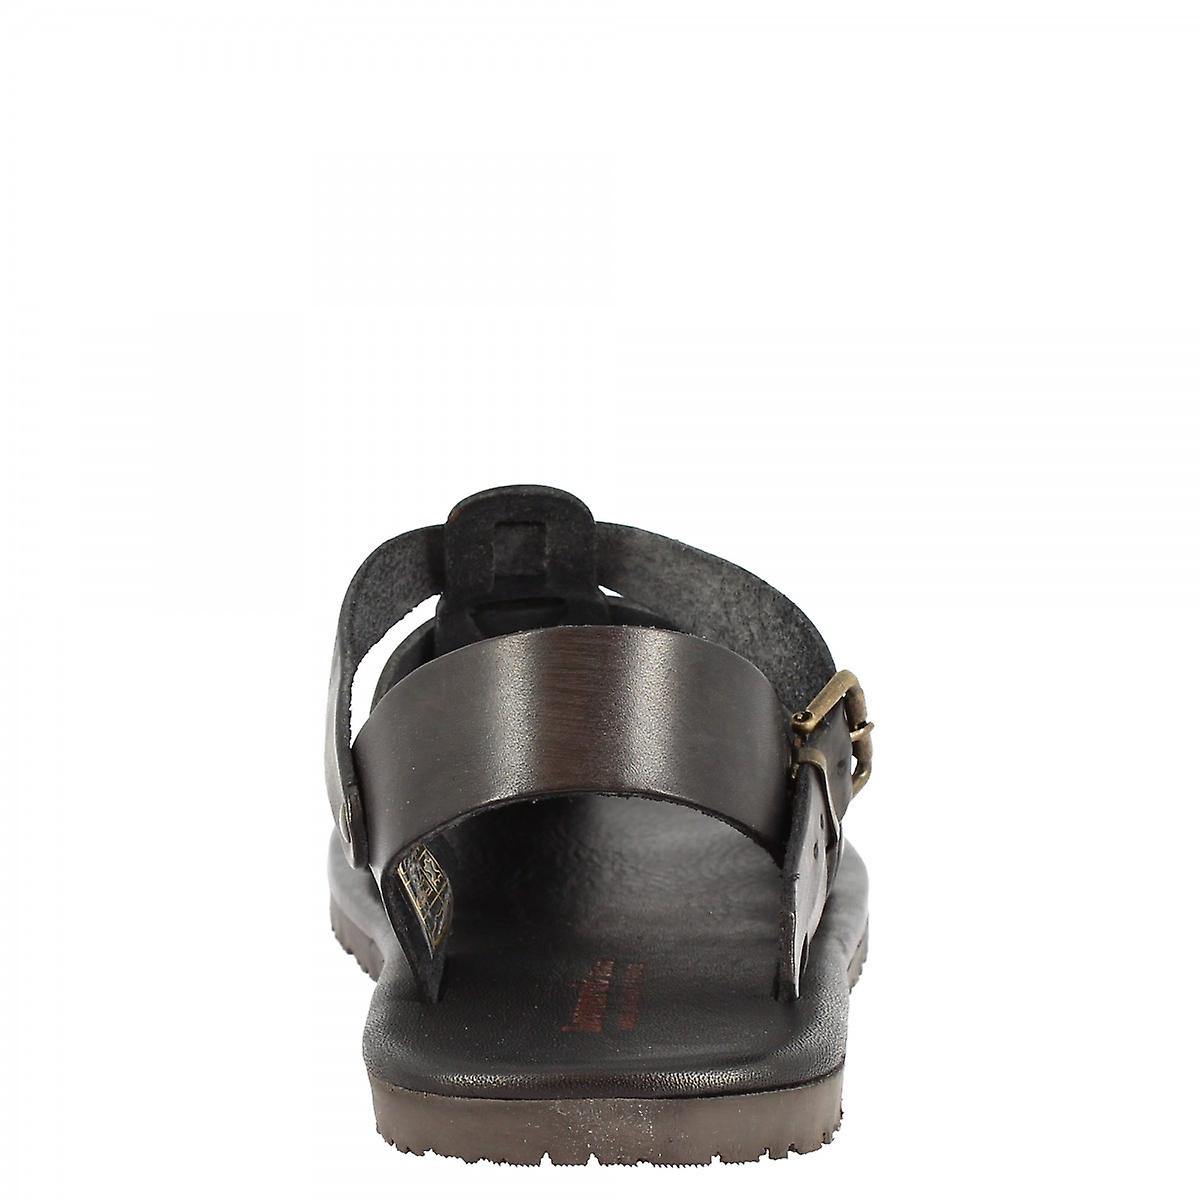 Leonardo Shoes Men's handmade franciscan sandals in black calf leather with side buckle closure